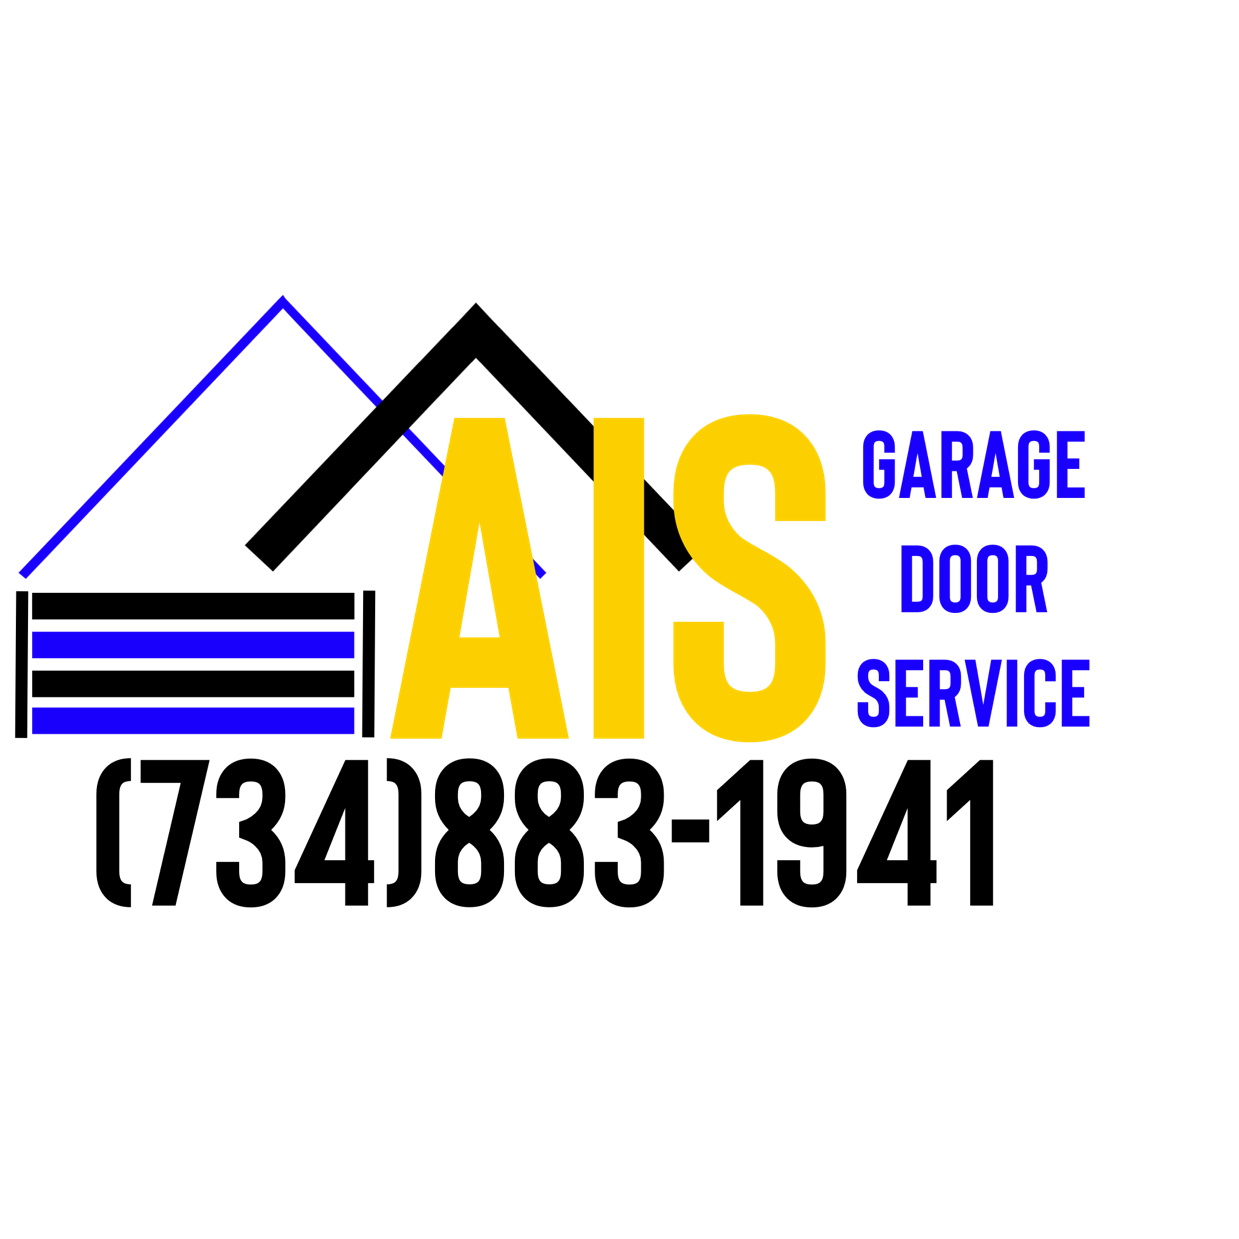 AIS Garage Door Service